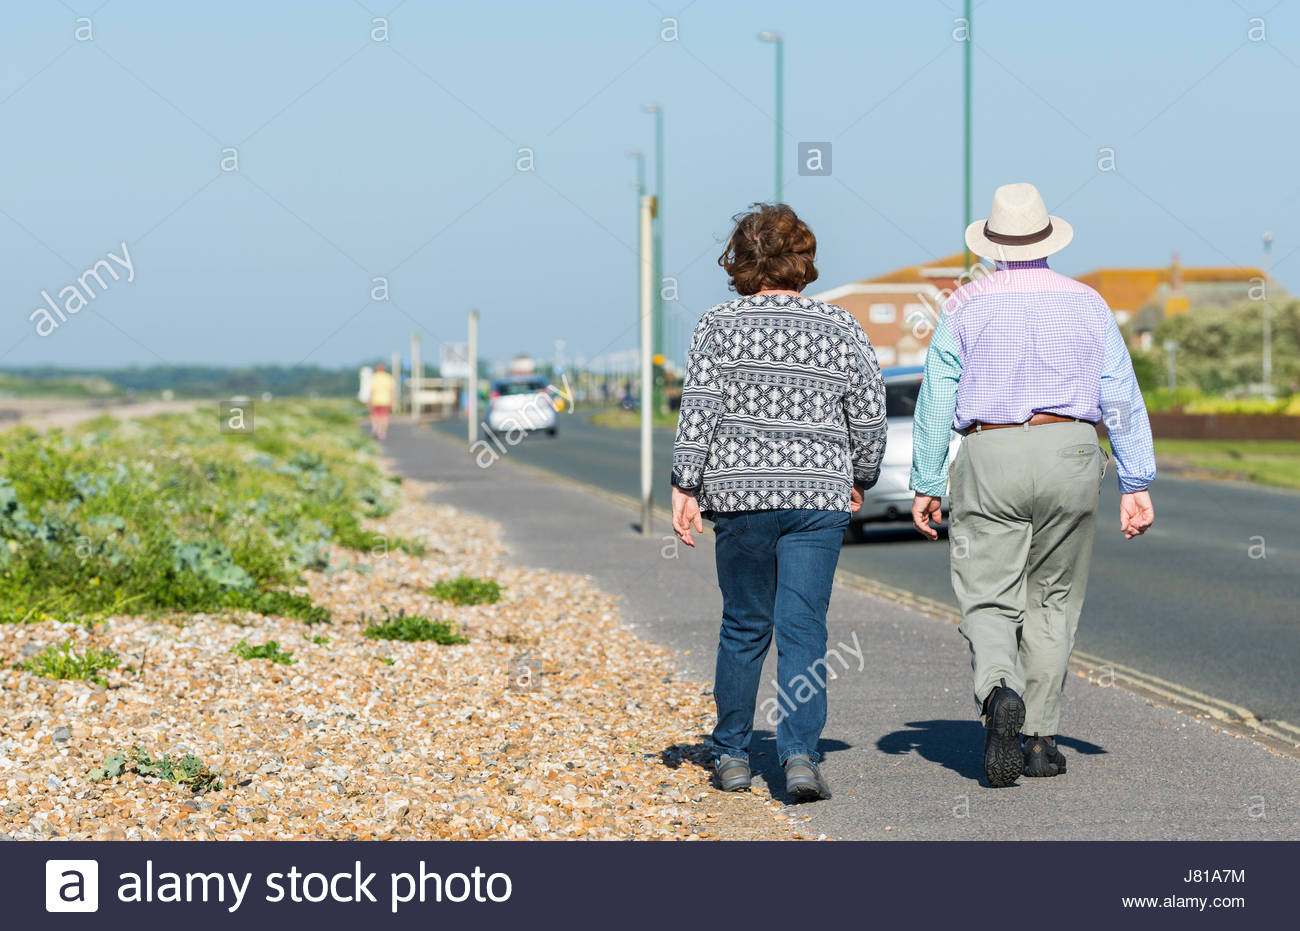 Elderly couple taking a morning stroll along a seafront road in Summer in the UK. - Stock Image